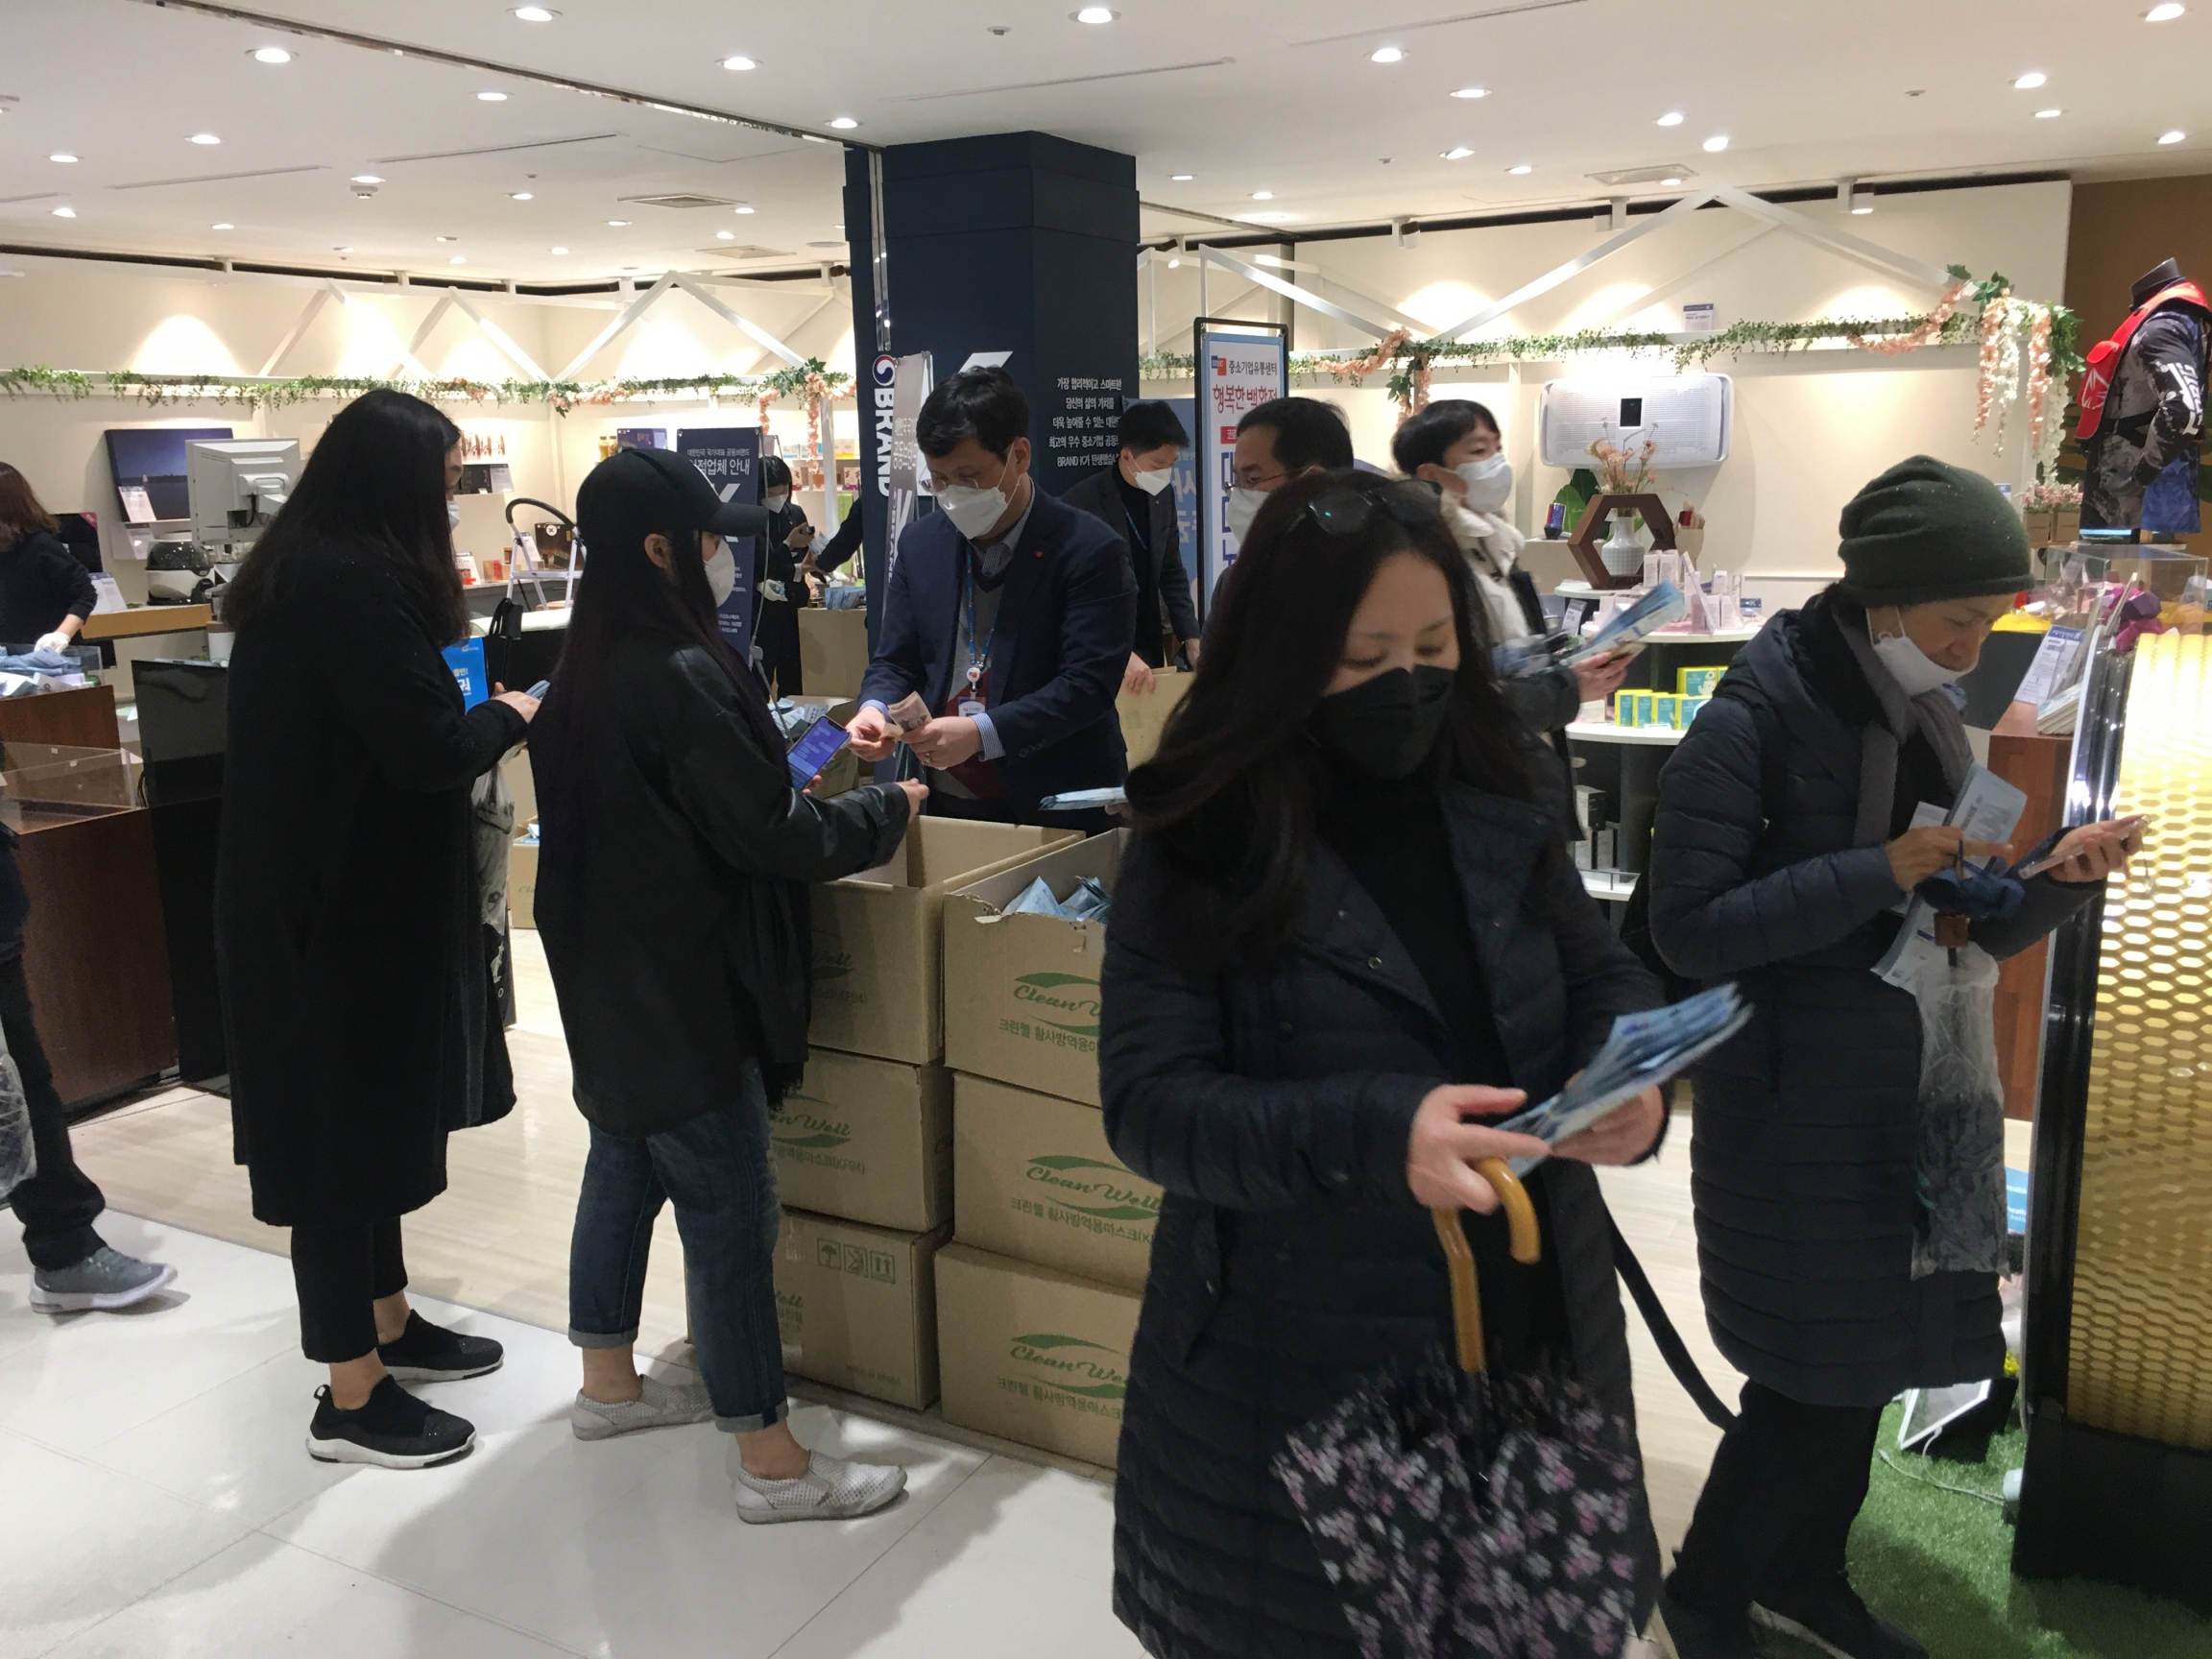 Shoppers buy subsidized respiratory masks at a department store in Seoul, South Korea.